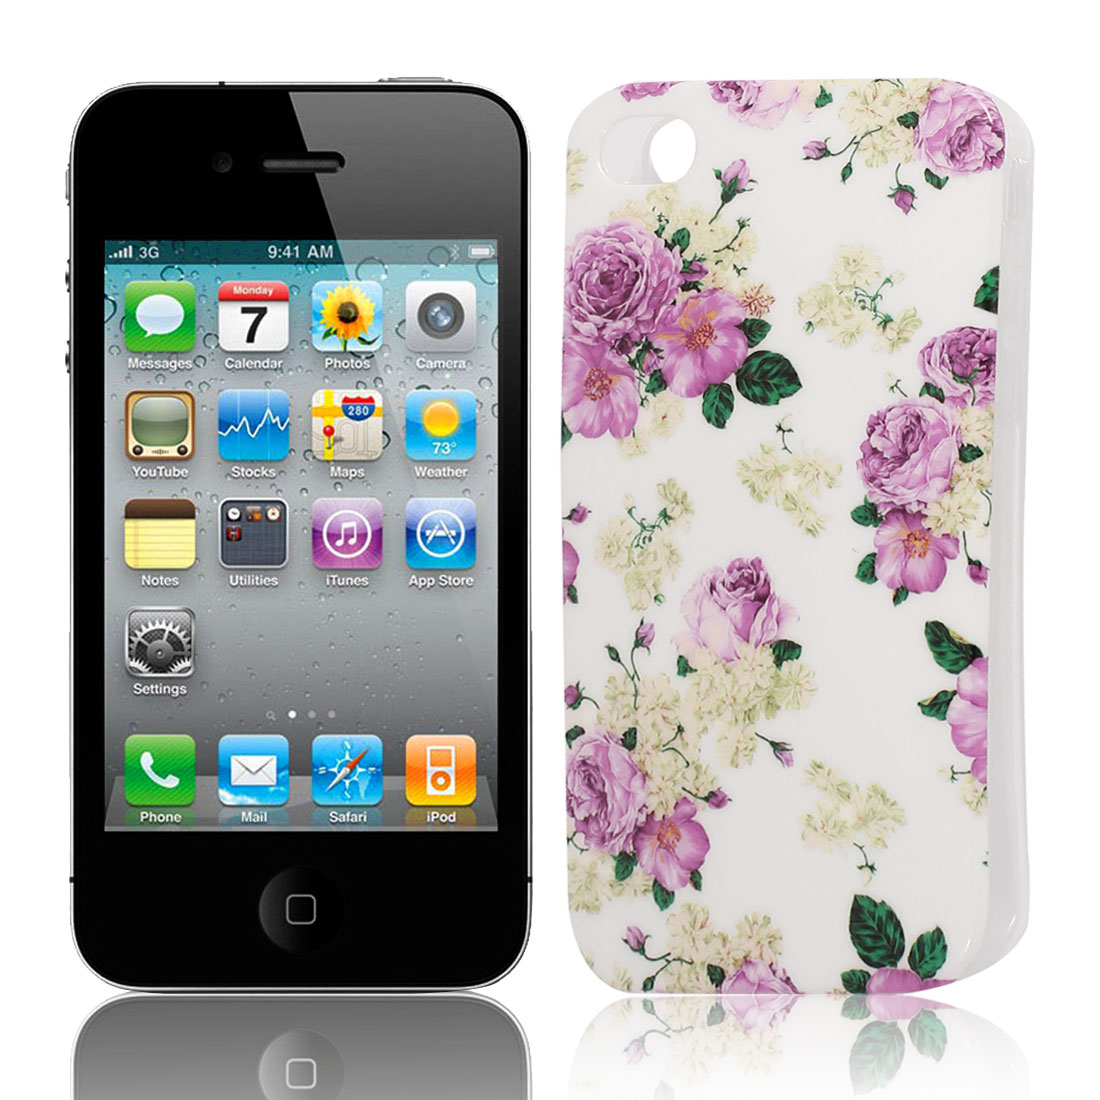 Fuchsia Flower Pattern Soft Plastic Protective Skin Cover Case for Apple iPhone 4 4G 4S